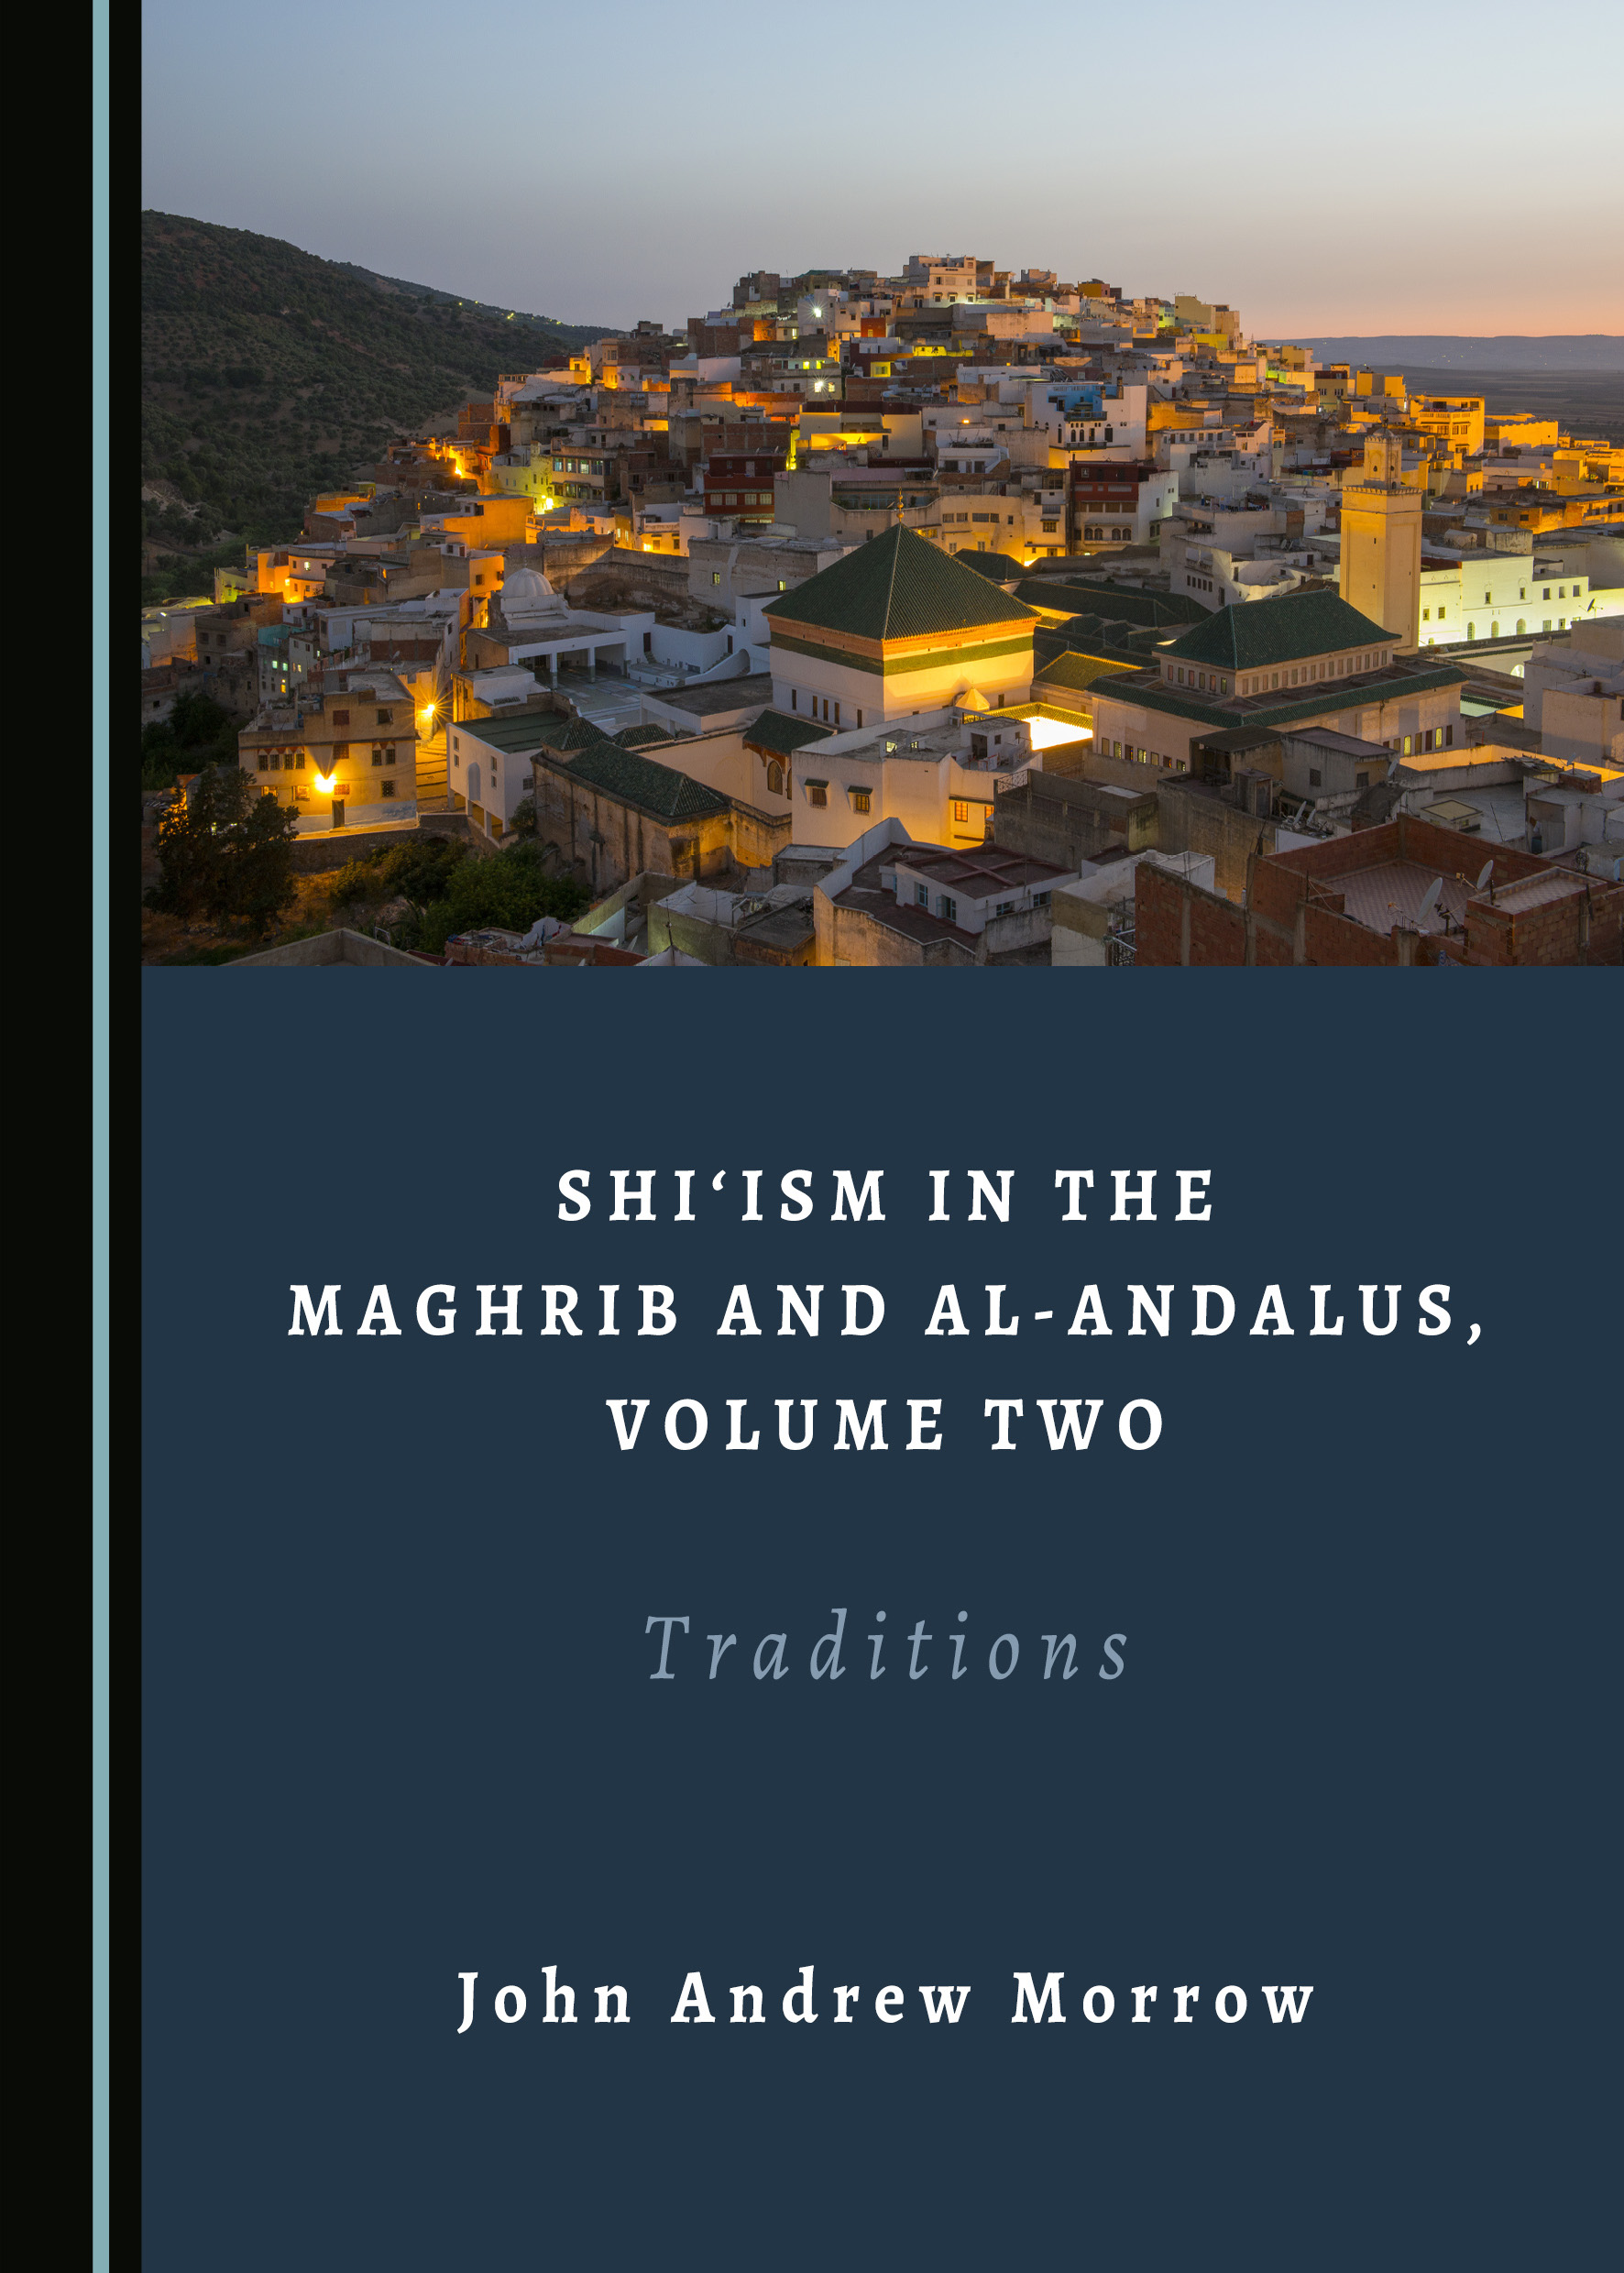 Shi'ism in the Maghrib and al-Andalus, Volume Two: Traditions